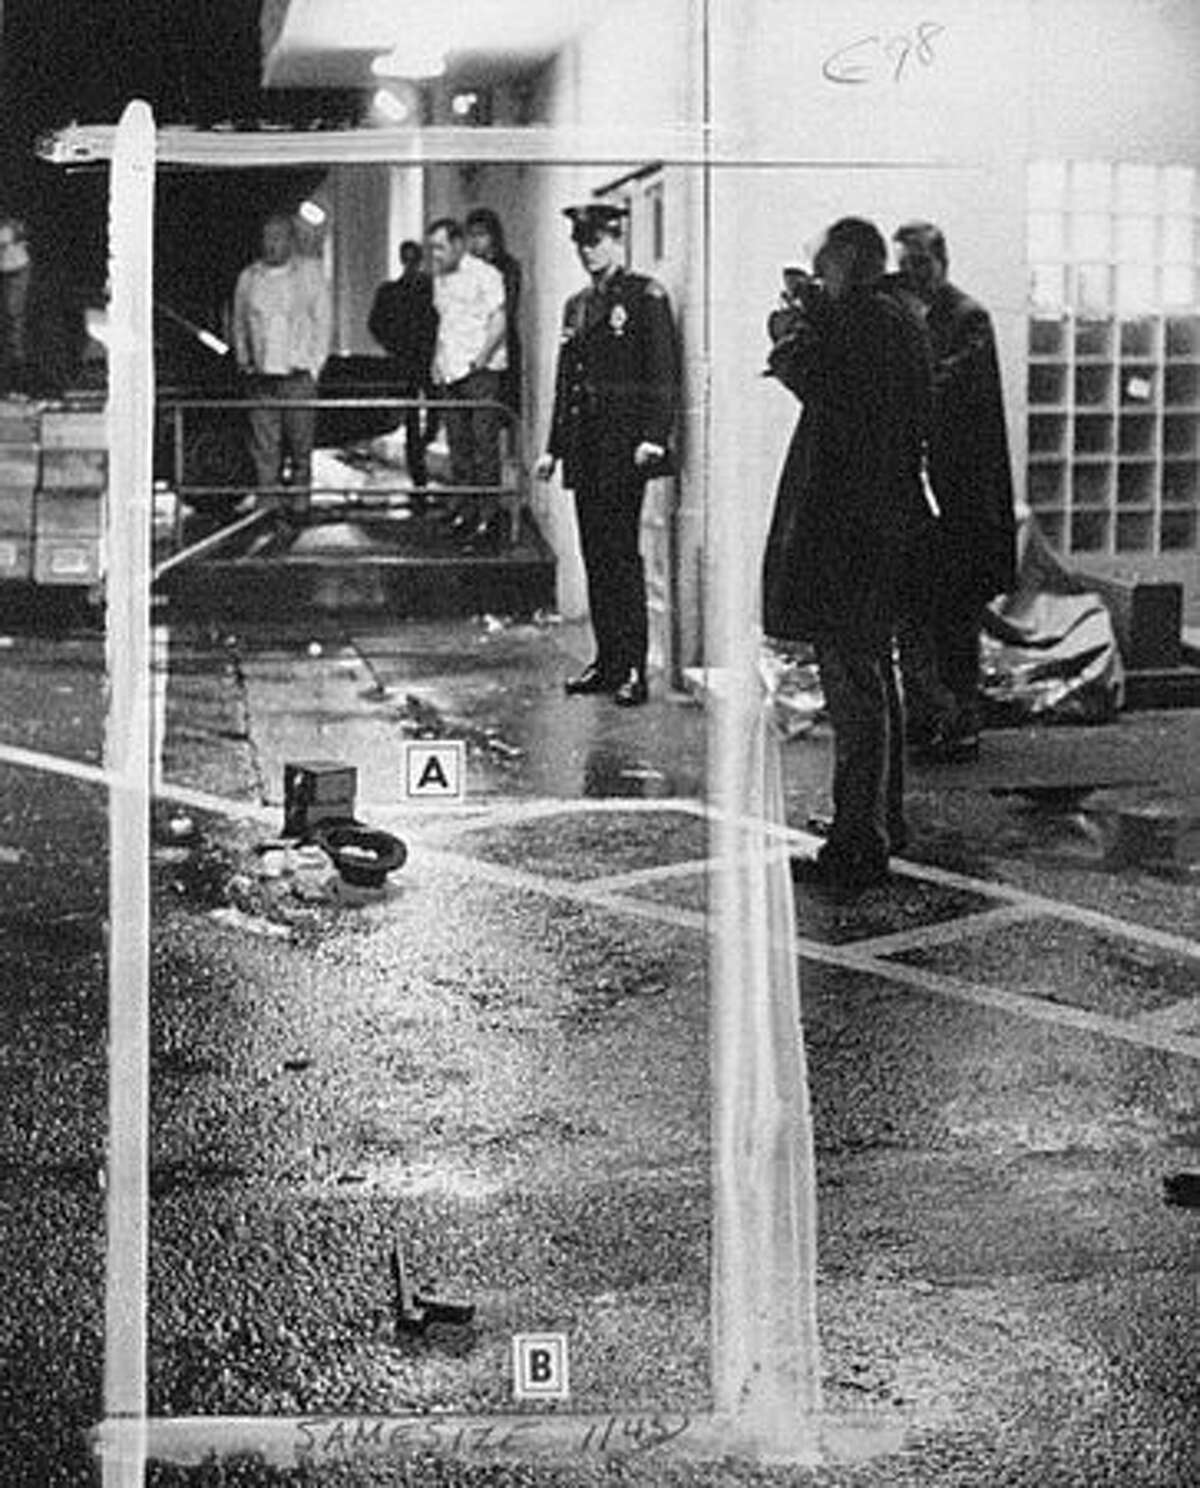 This is the scene where Seattle Police Officer Robert Allshaw was shot, Nov. 11, 1968 at the Pinehurst IGA grocery store.